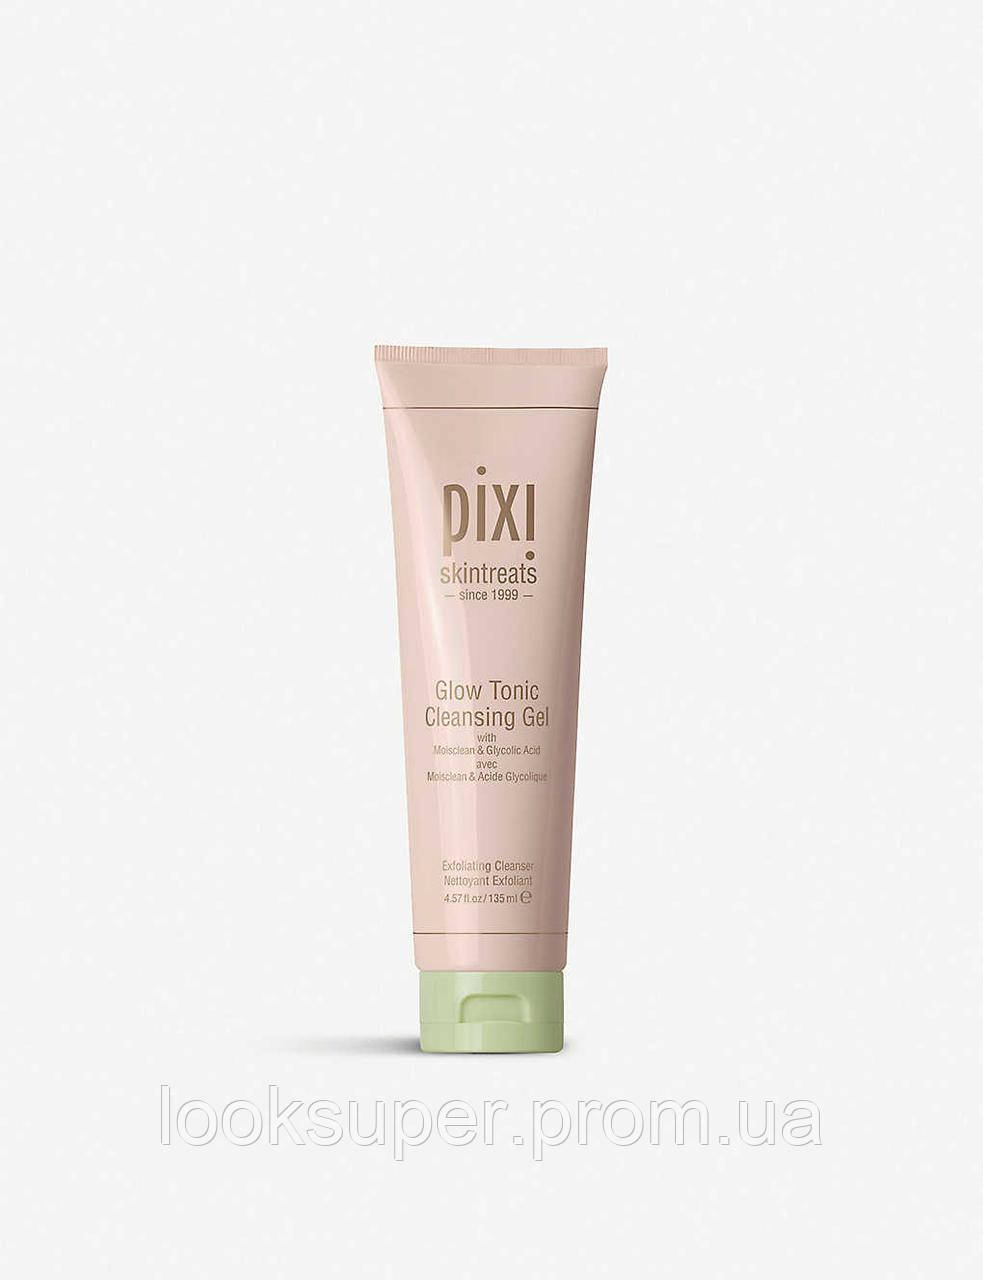 Очищающий гель PIXI Glow Tonic Cleansing Gel (135ml)